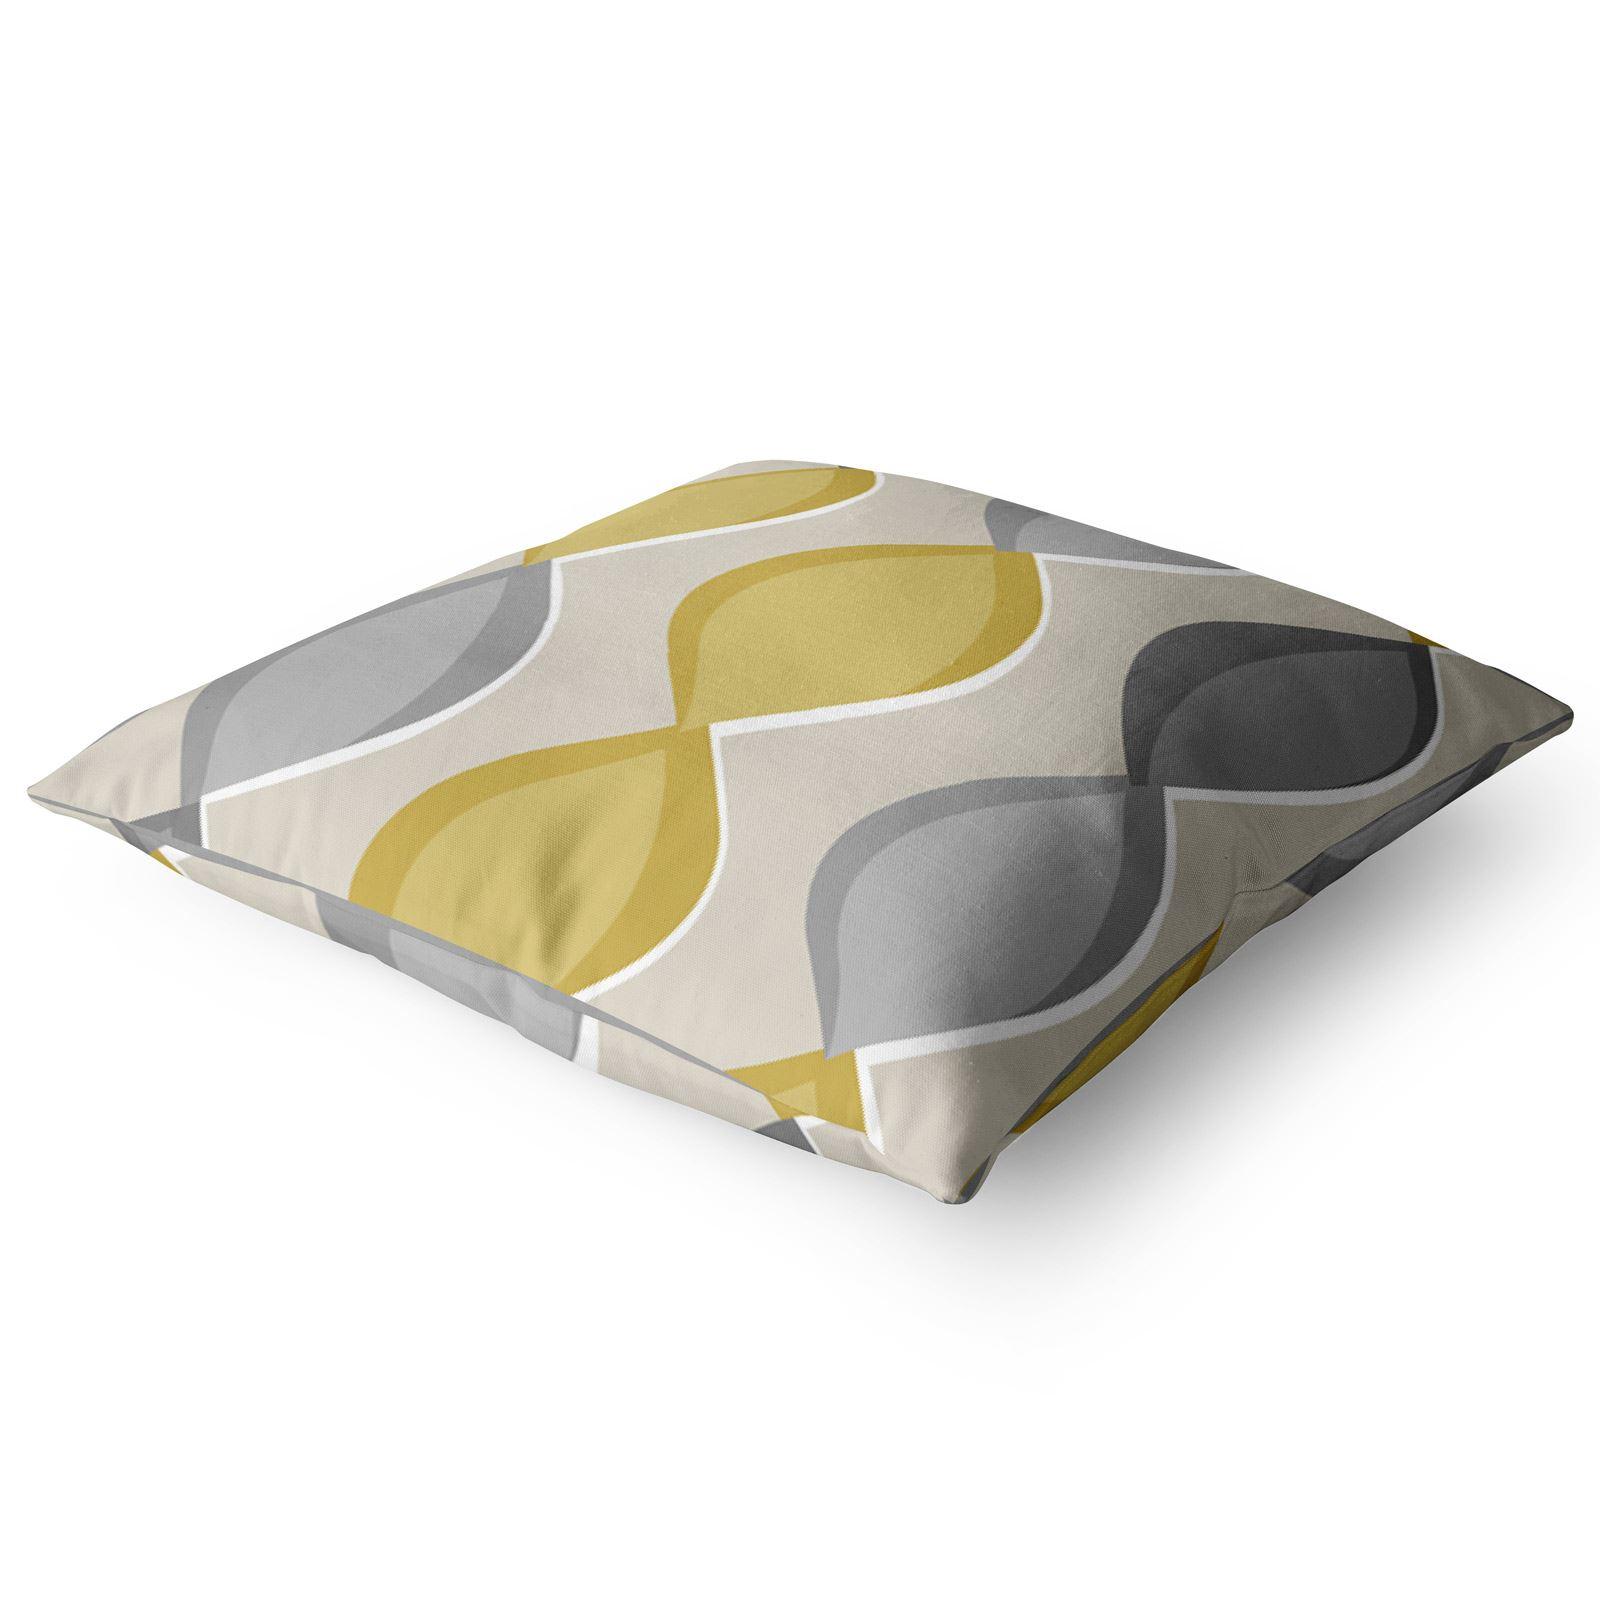 Grey-Ochre-Mustard-Cushion-Cover-Collection-17-034-18-034-Covers-Filled-Cushions thumbnail 81